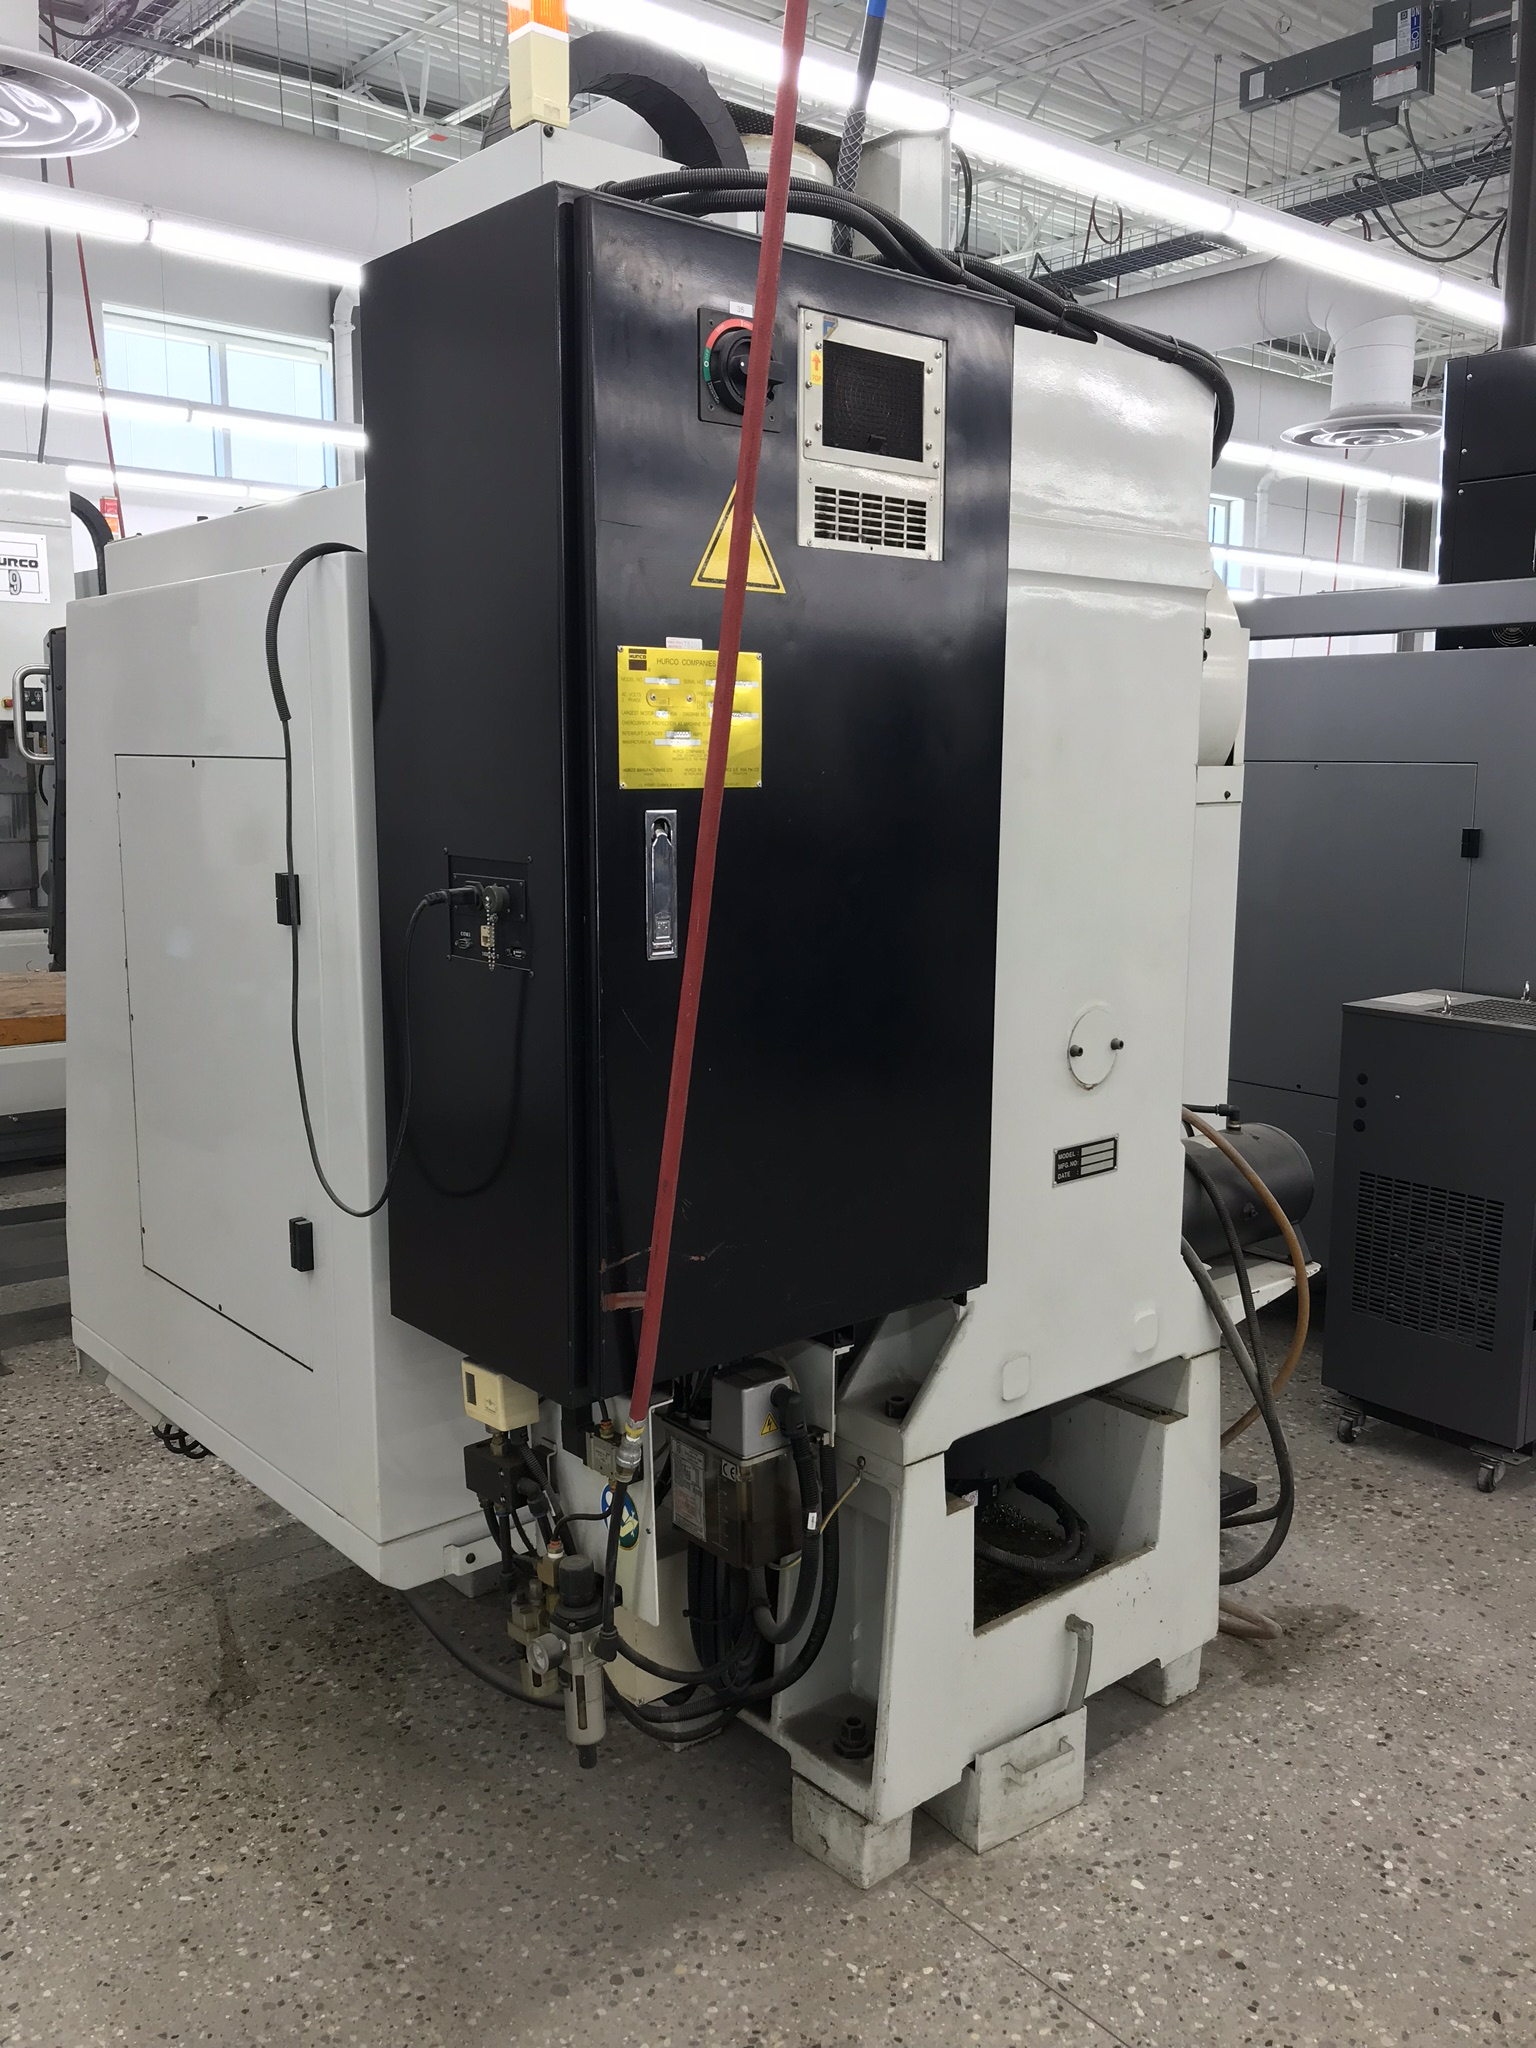 Hurco VM-1 CNC Vertical Machining Center, Spindle Recently Replaced, Approx 6,800 Hours, Max Control - Image 4 of 5